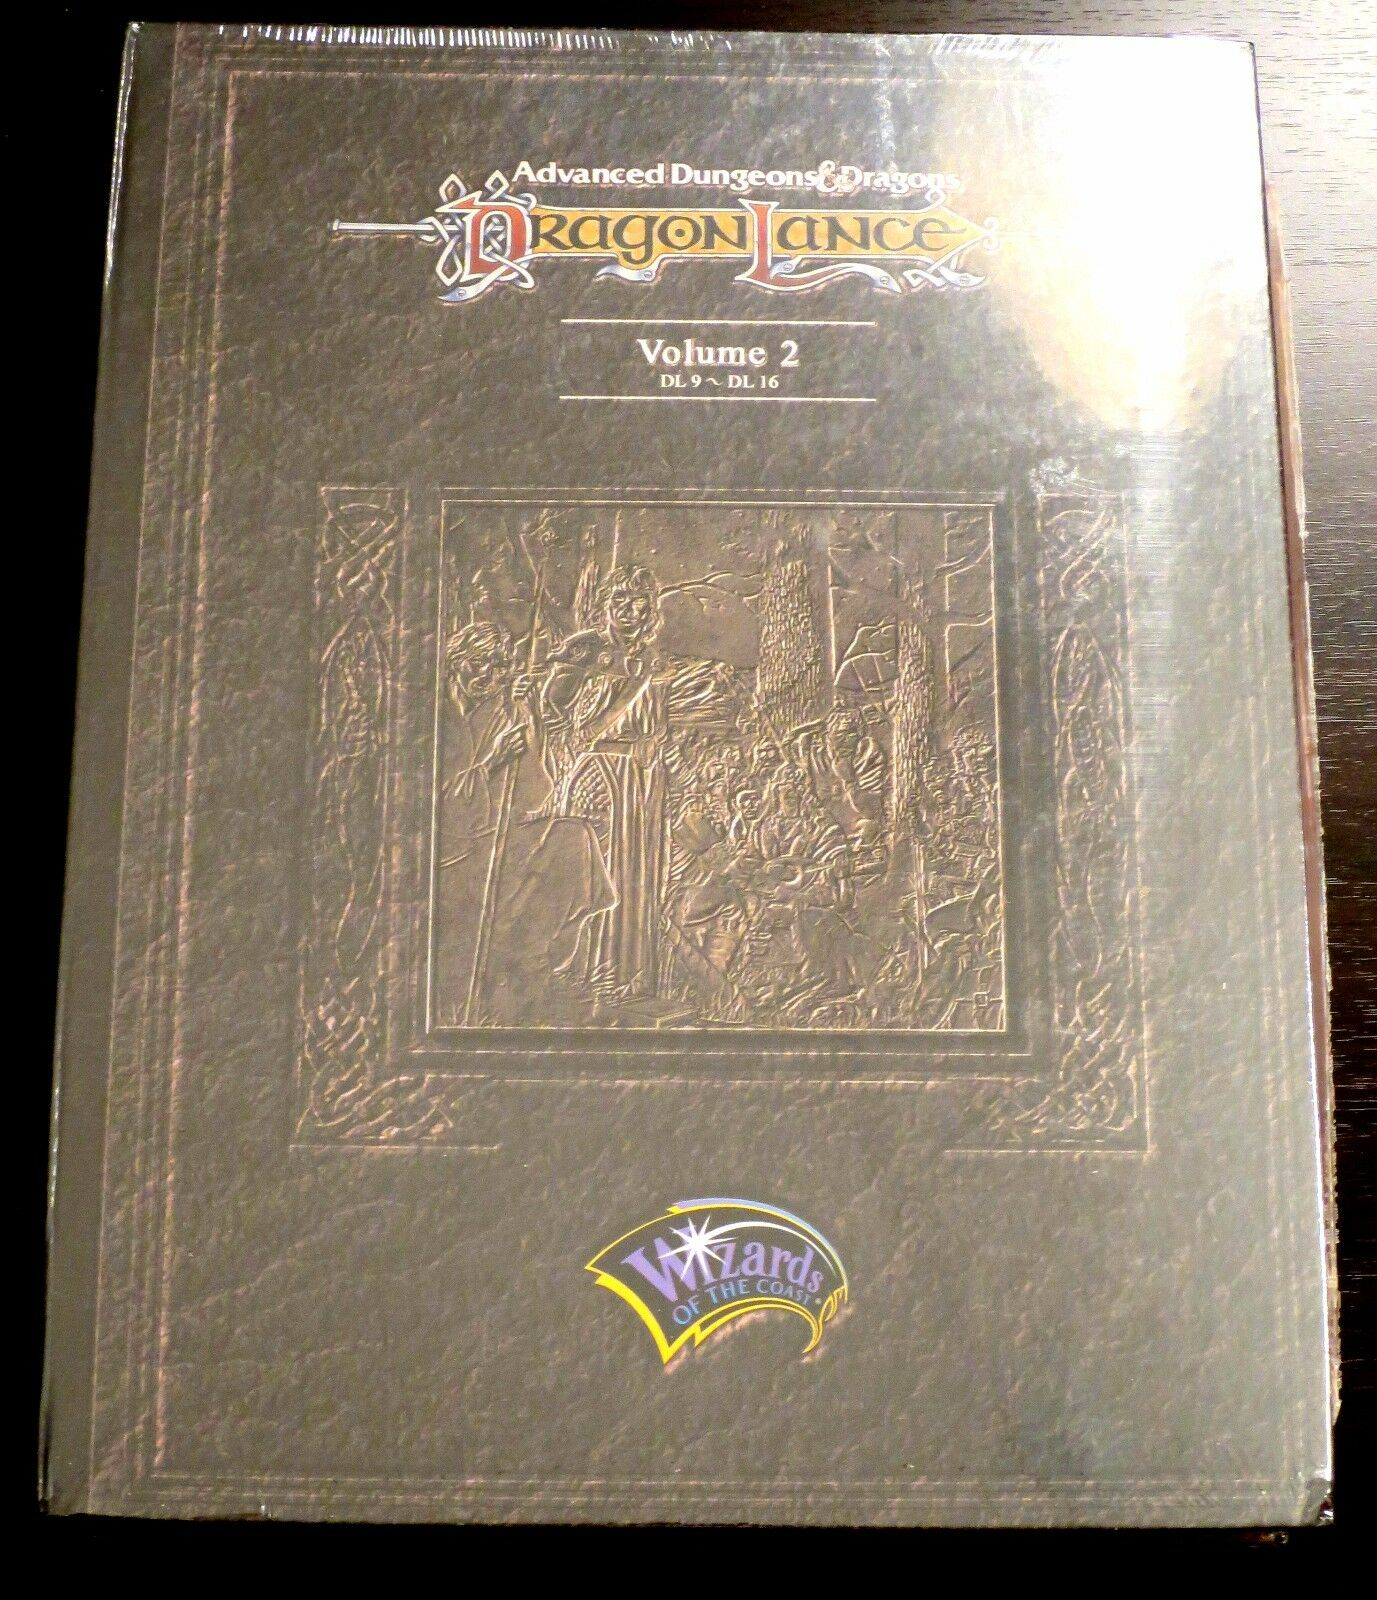 Dragonlance Slipcase Module Set Vol 2 - sealed but with some damage